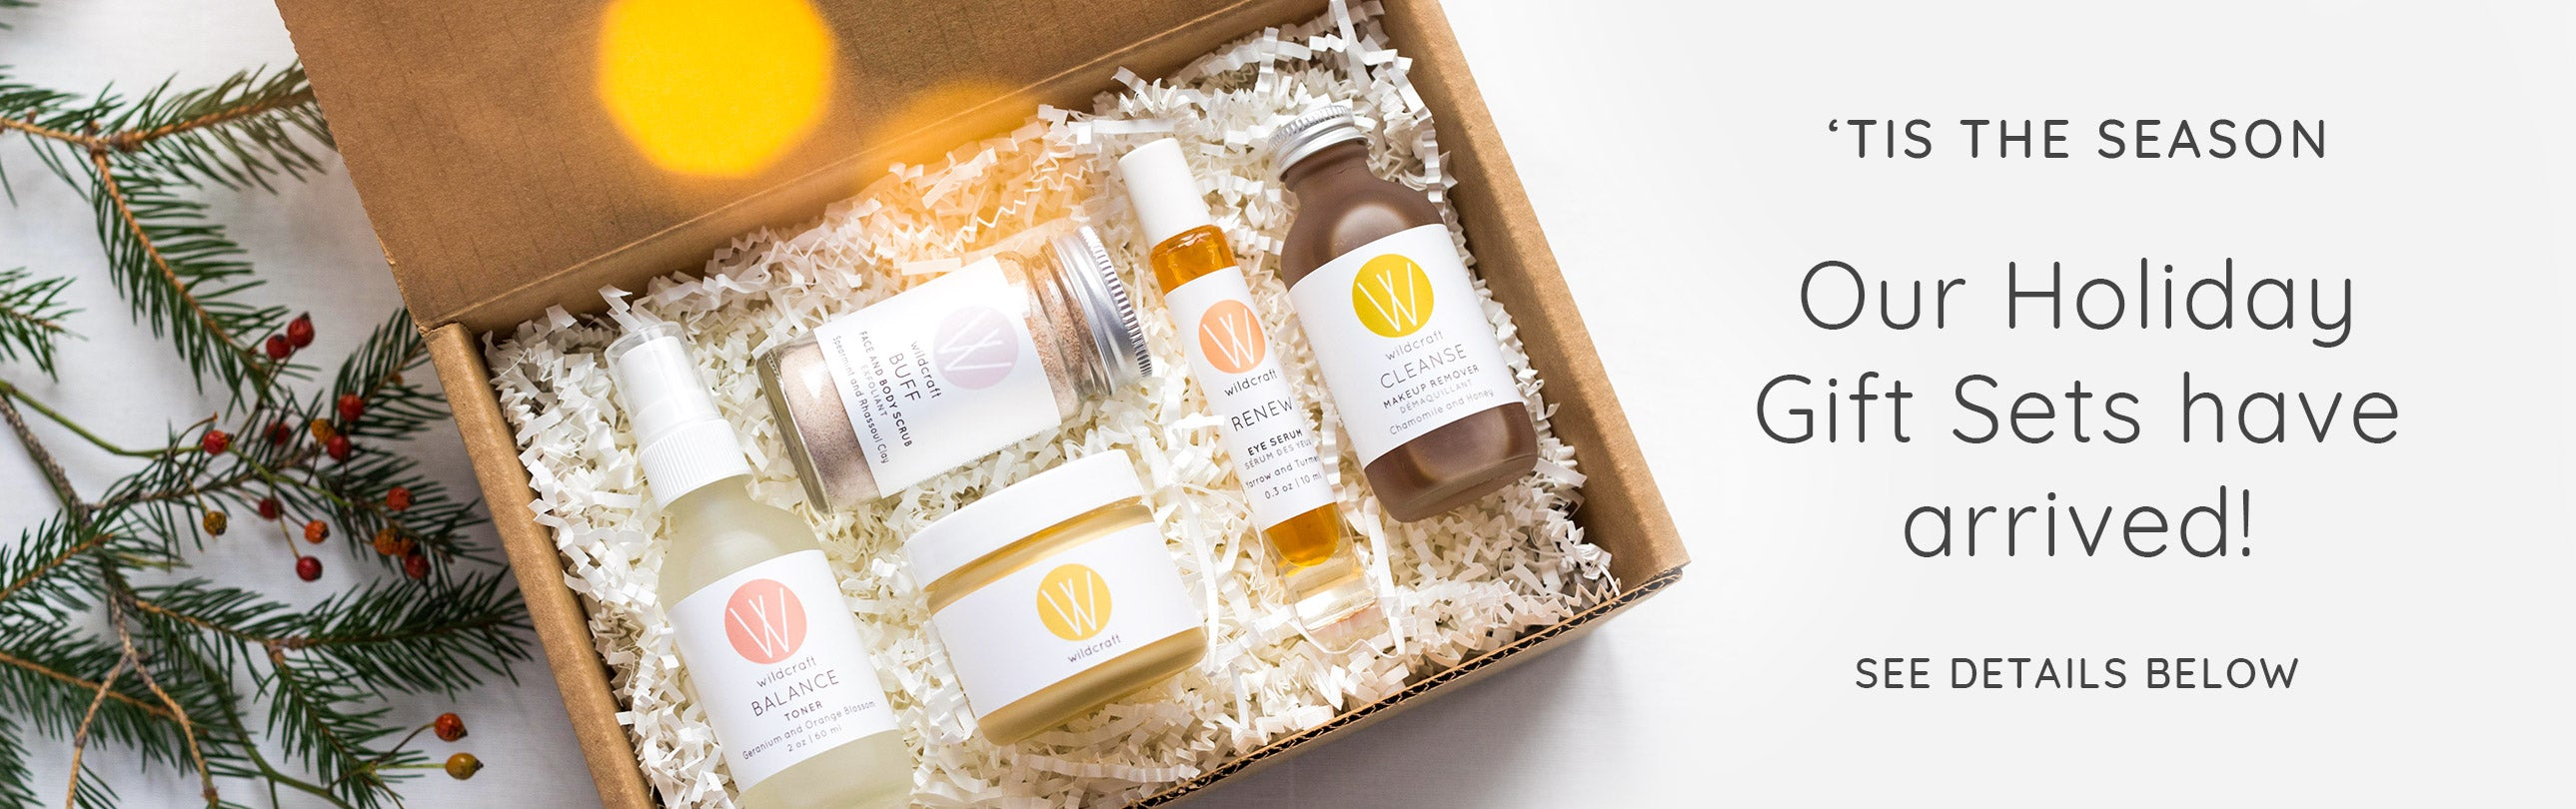 Our Holiday Gift Sets have arrived!